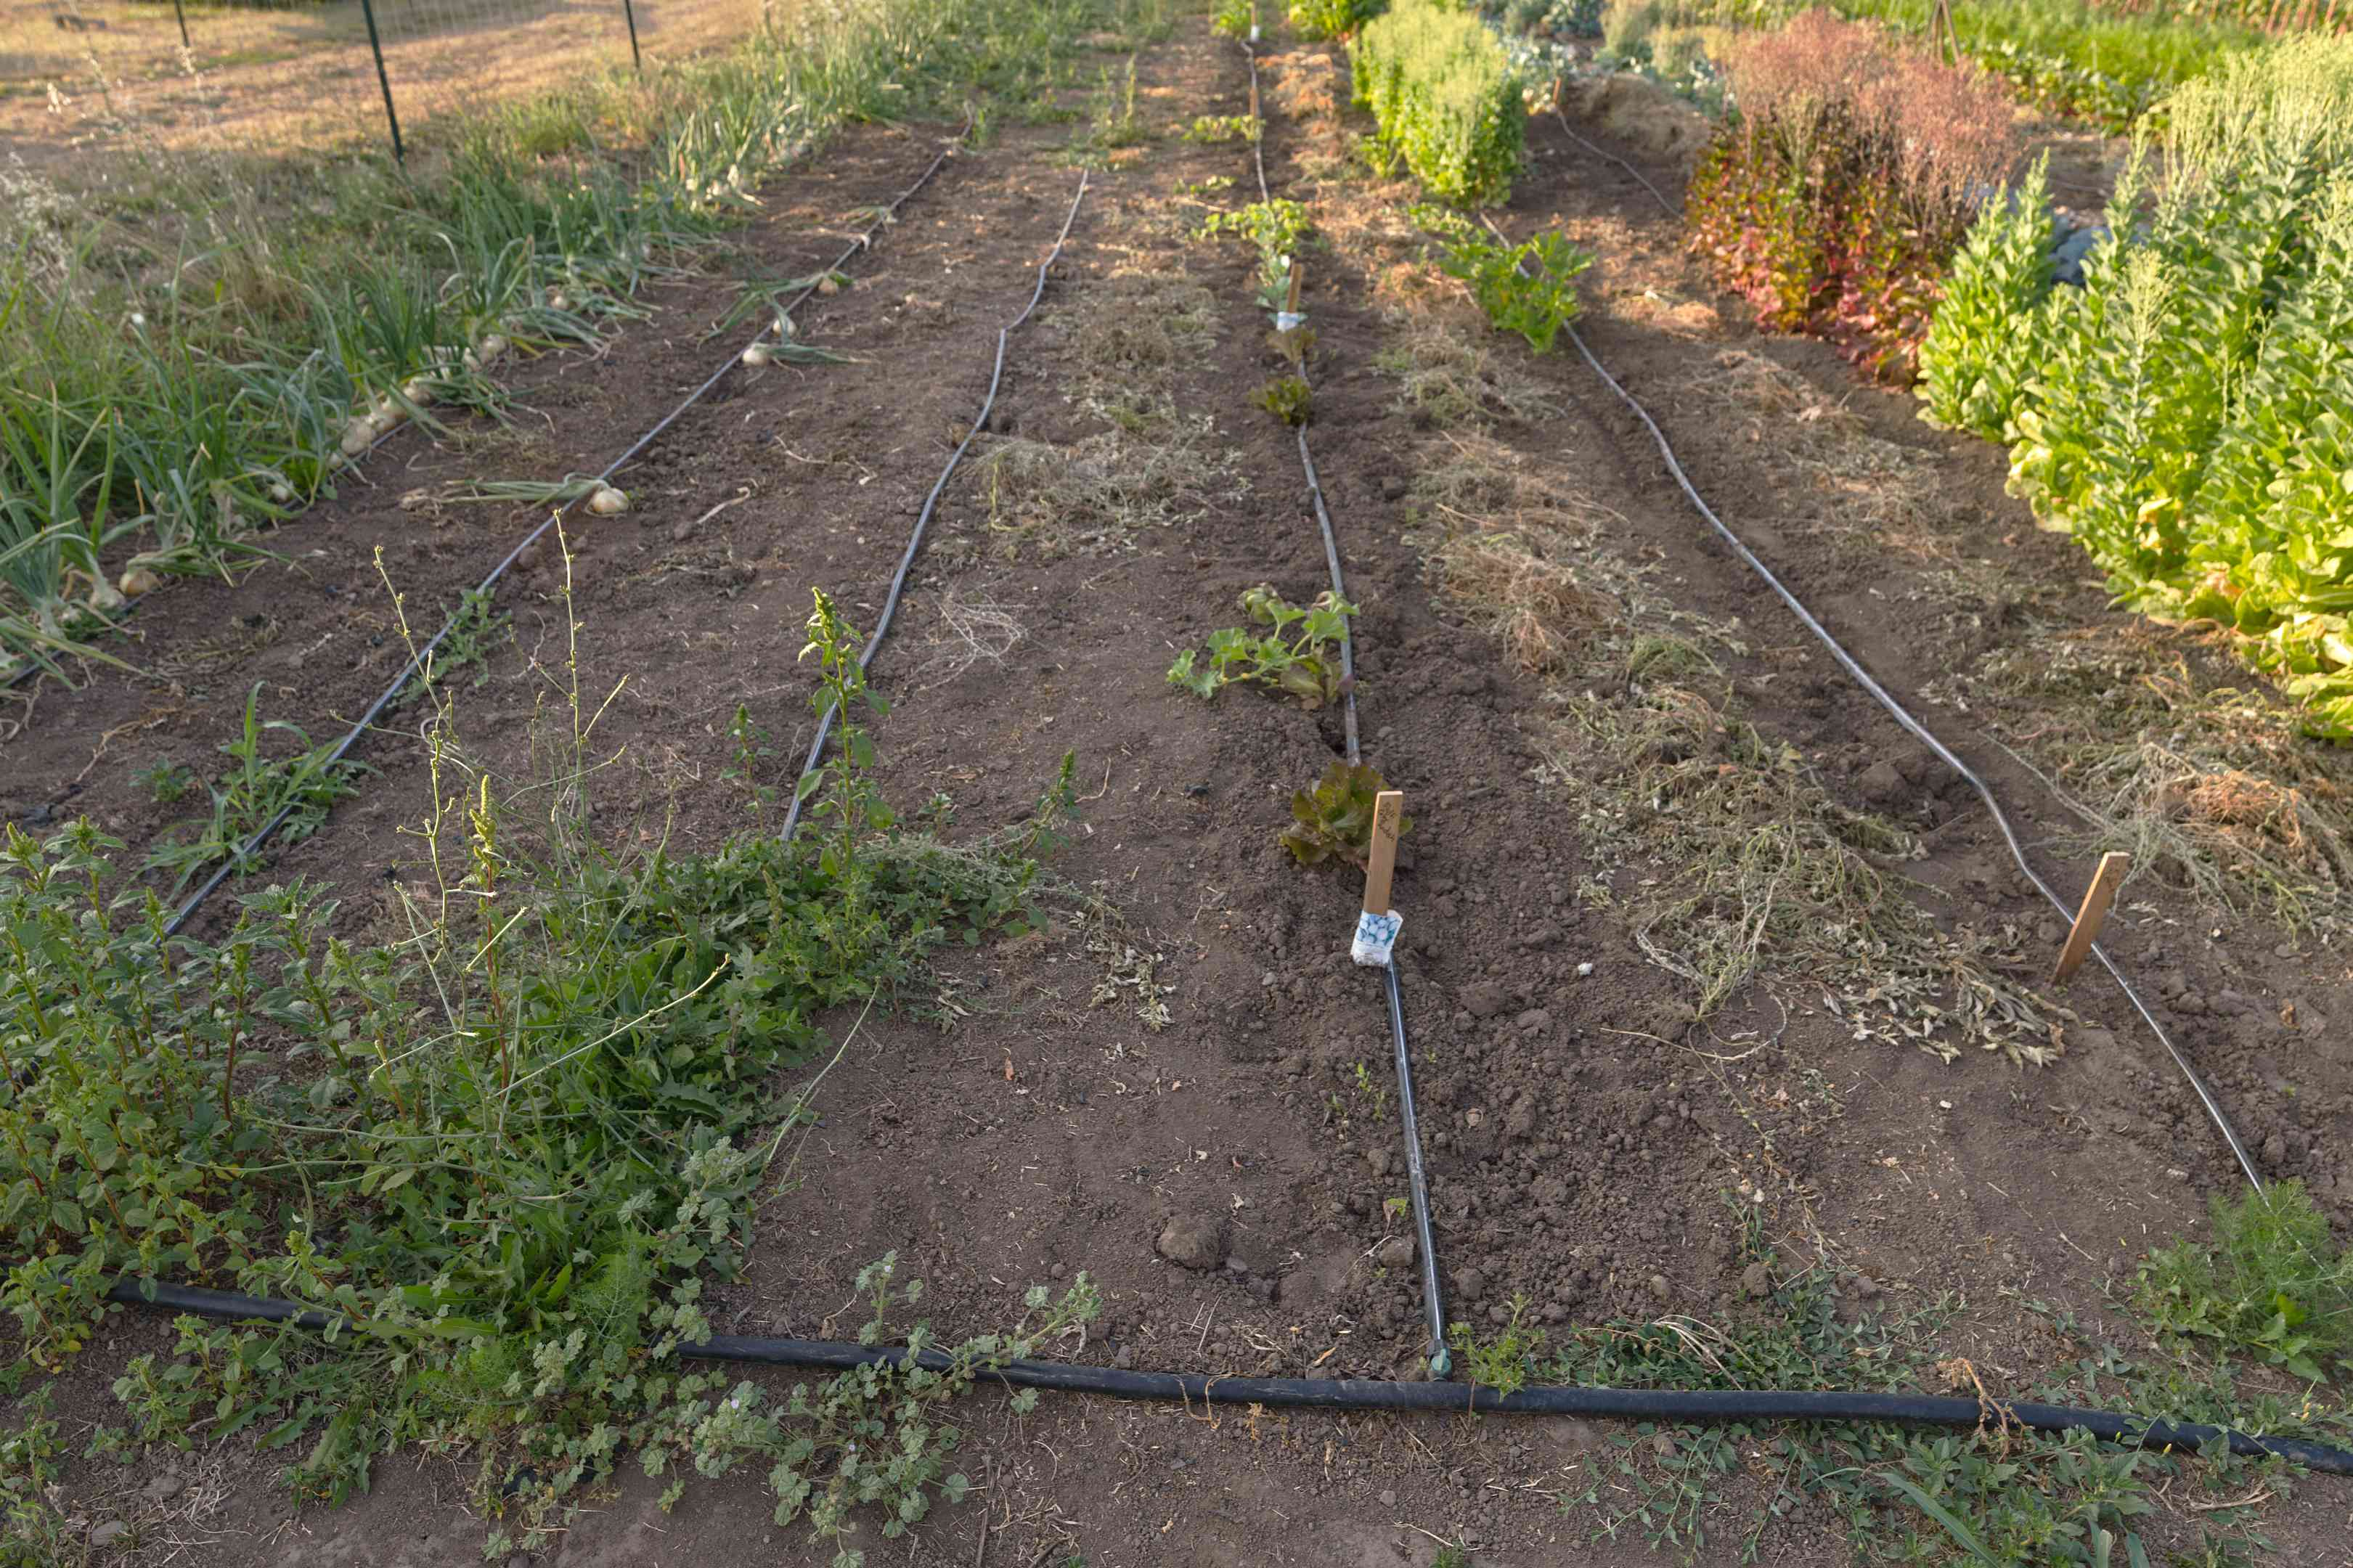 long view of complicated multi-row drip irrigation system in outside garden